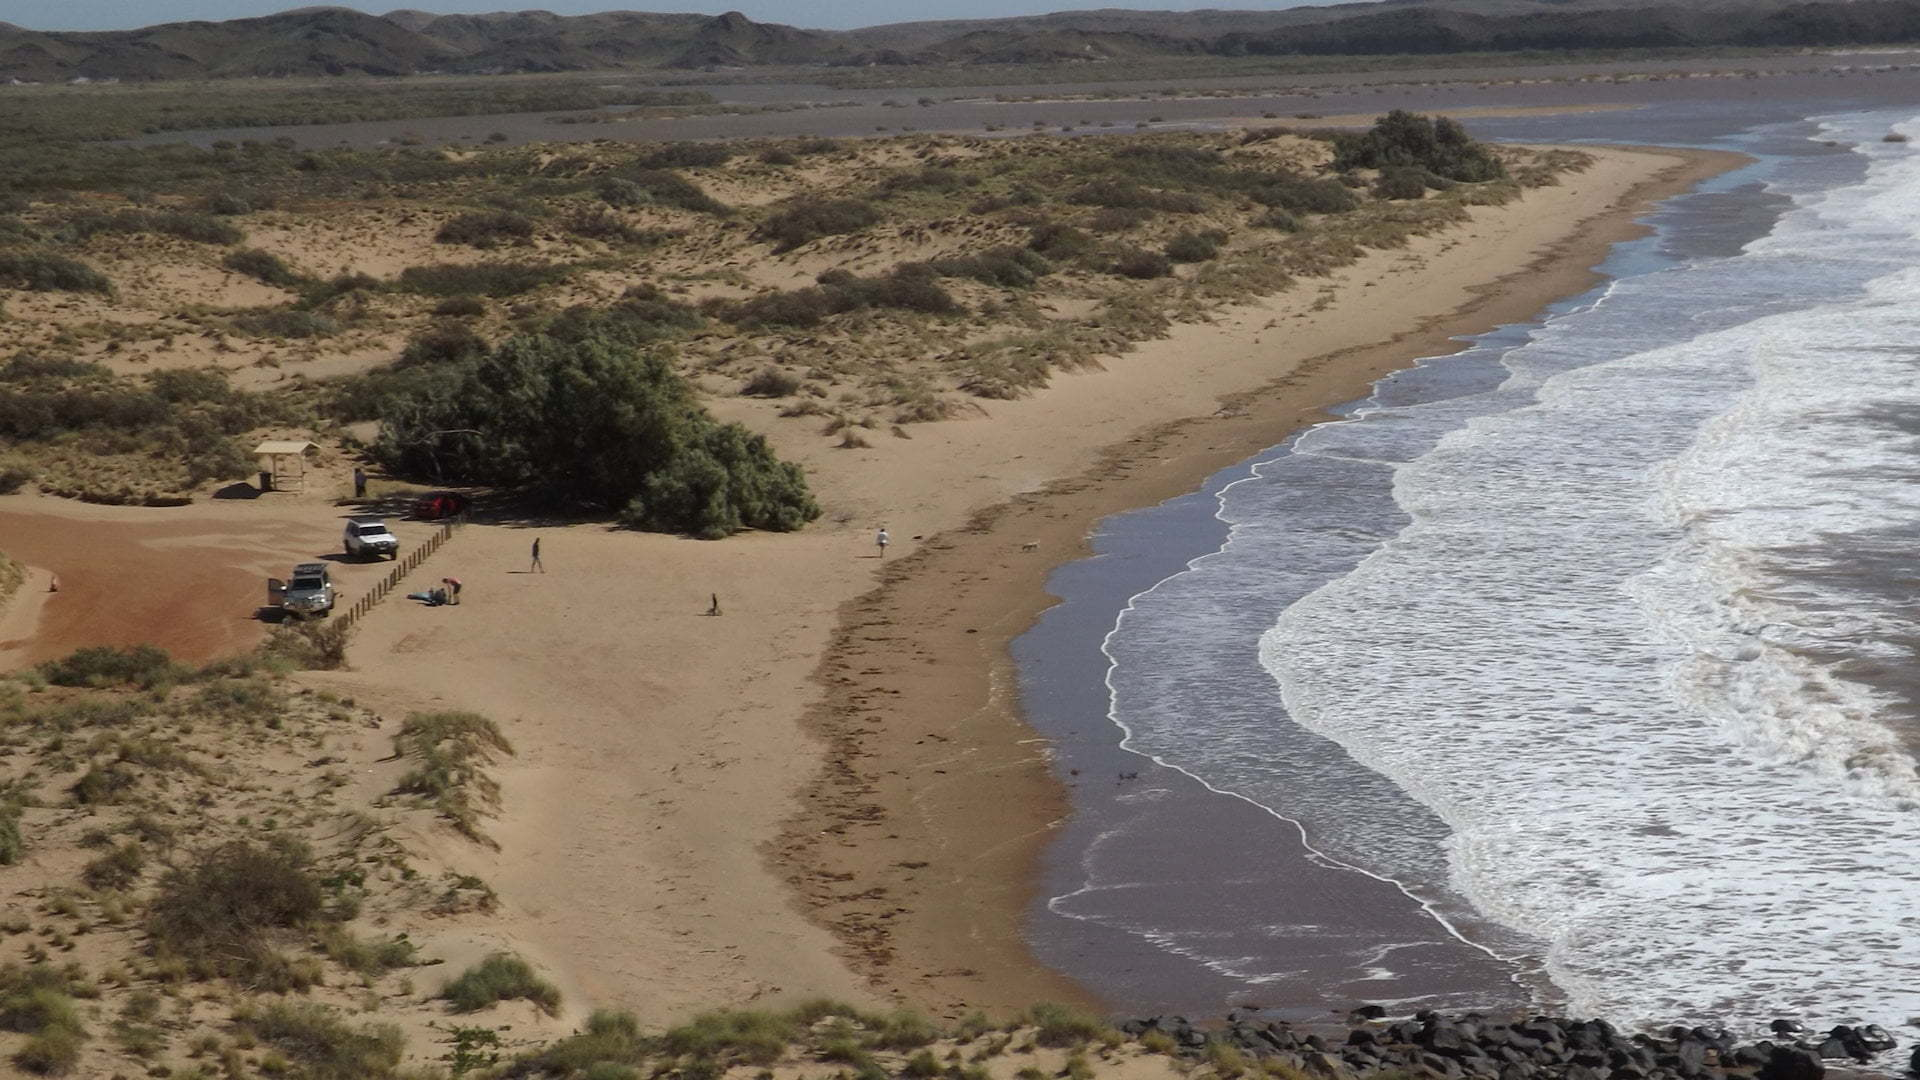 View over Settlers Beach at Cossack in Western Australia